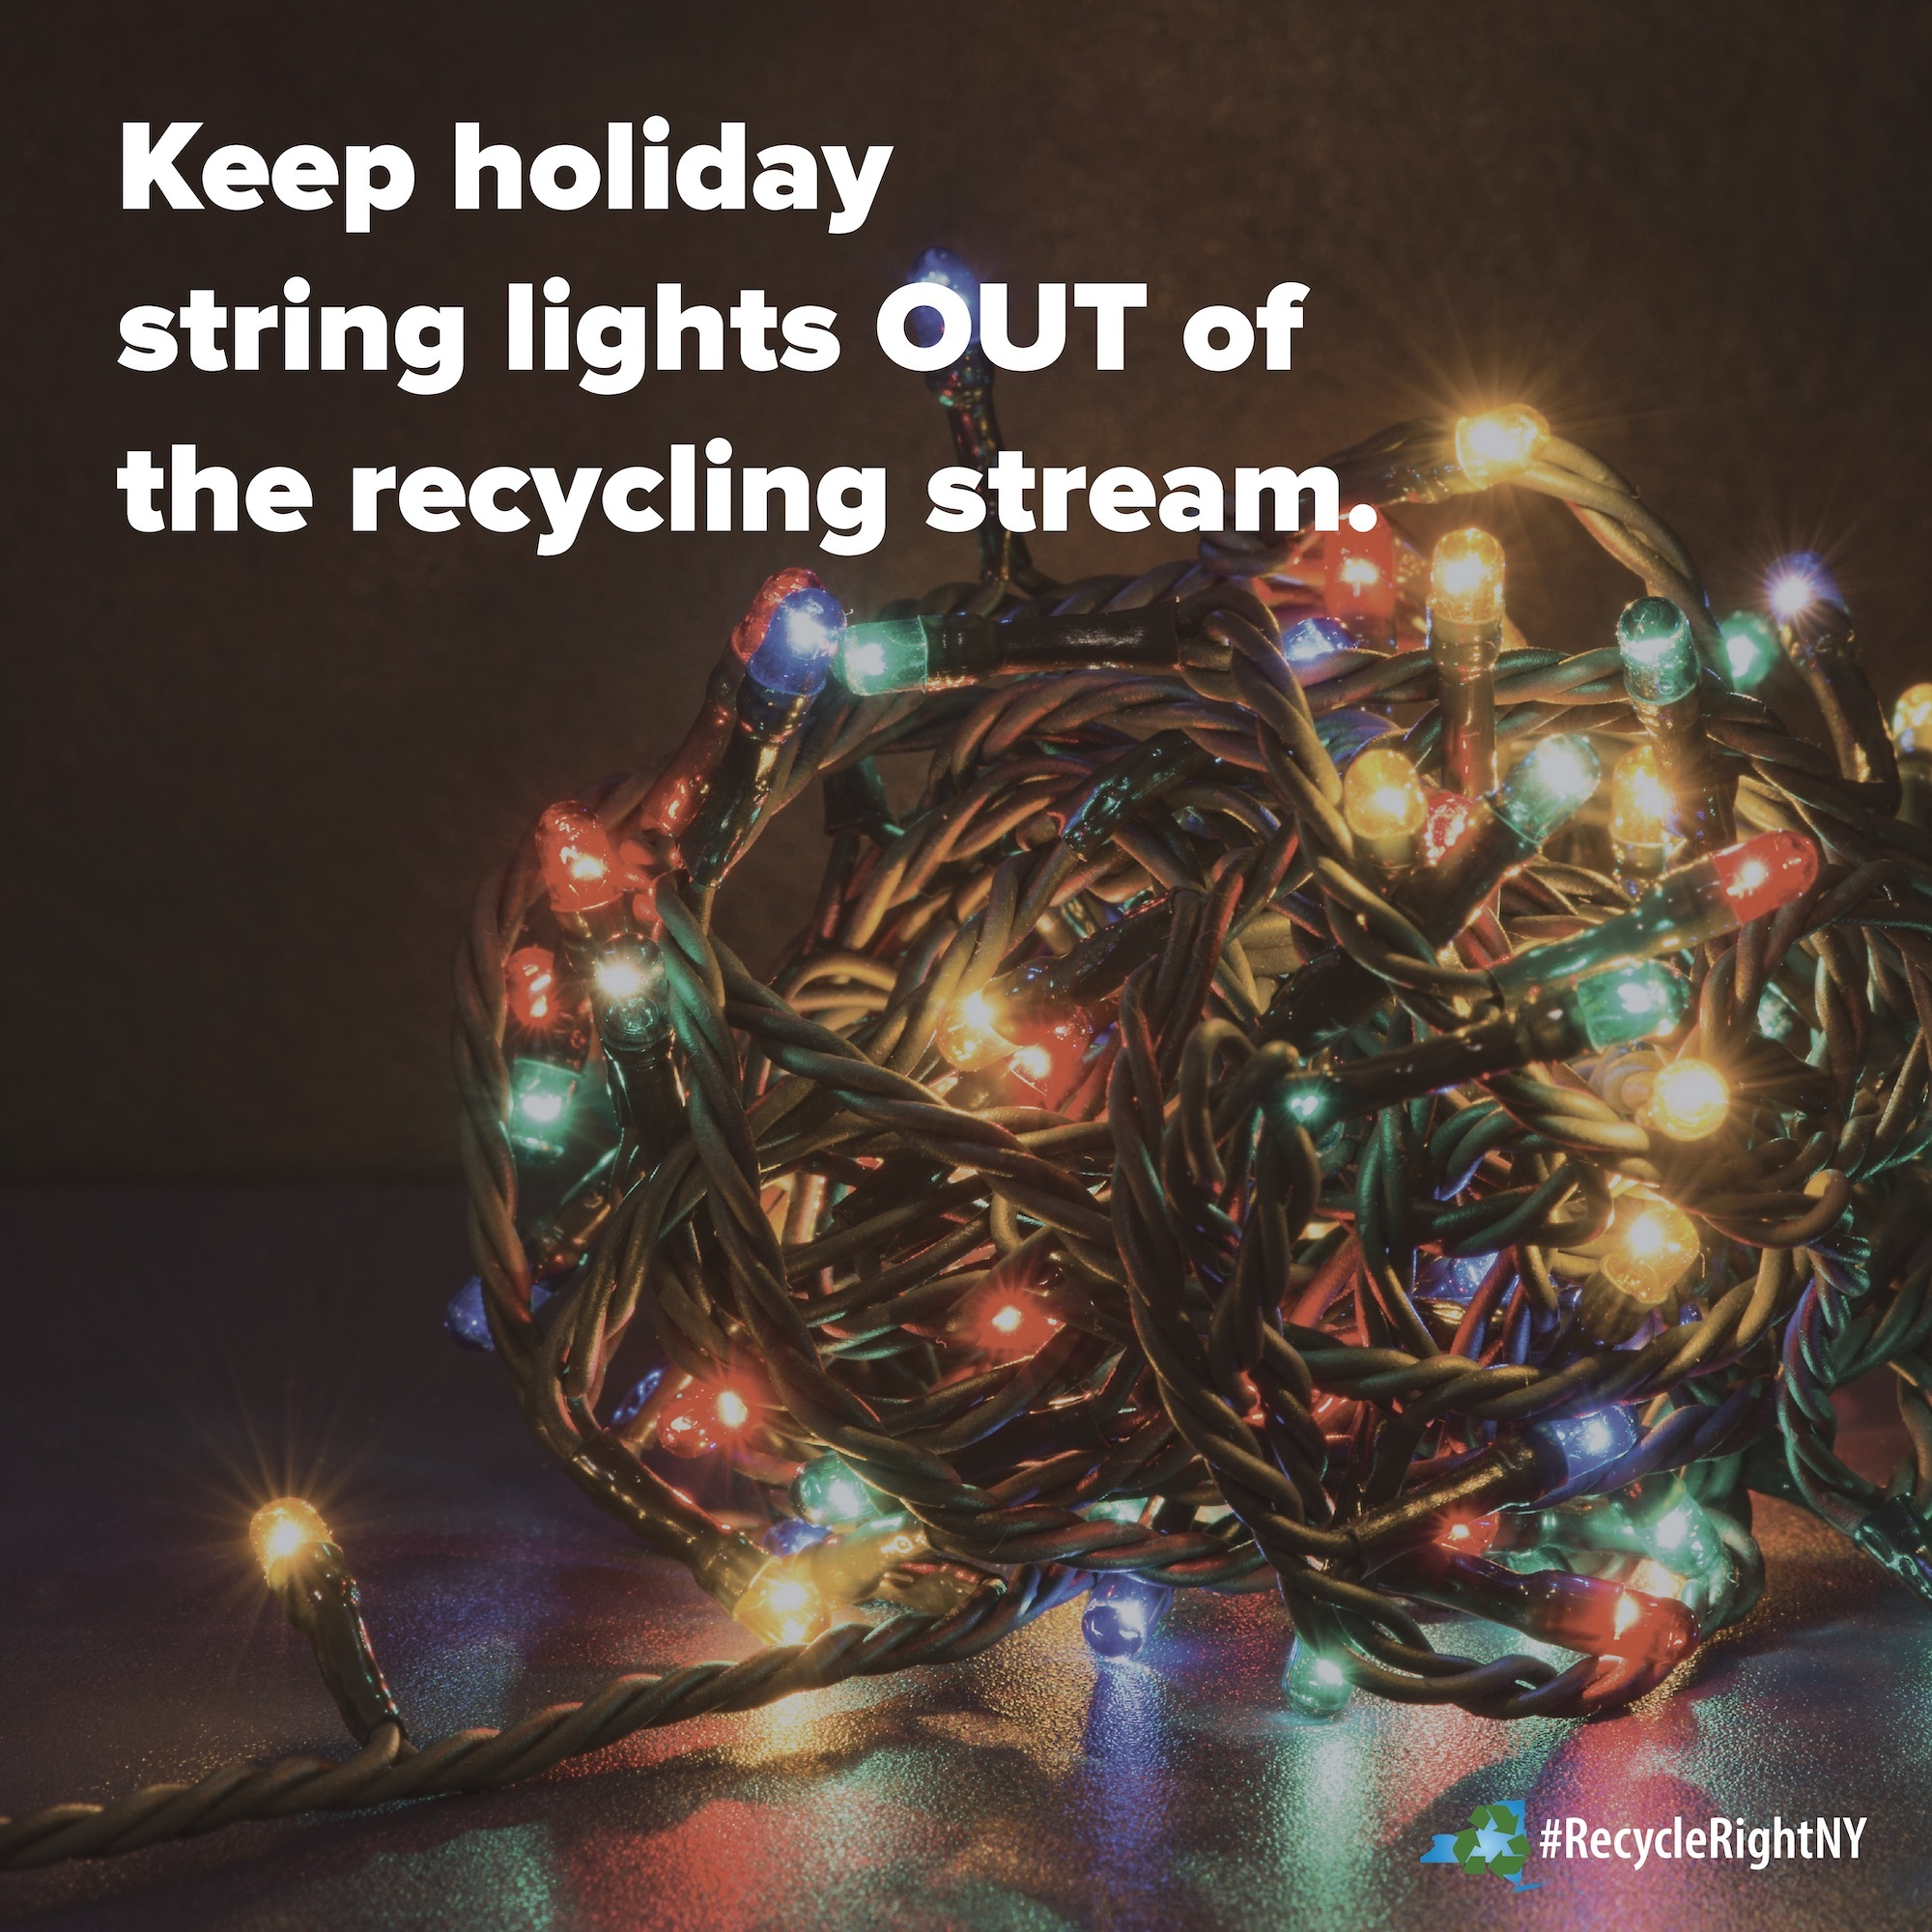 image letting people know to keep holiday lights out of their recycling bins